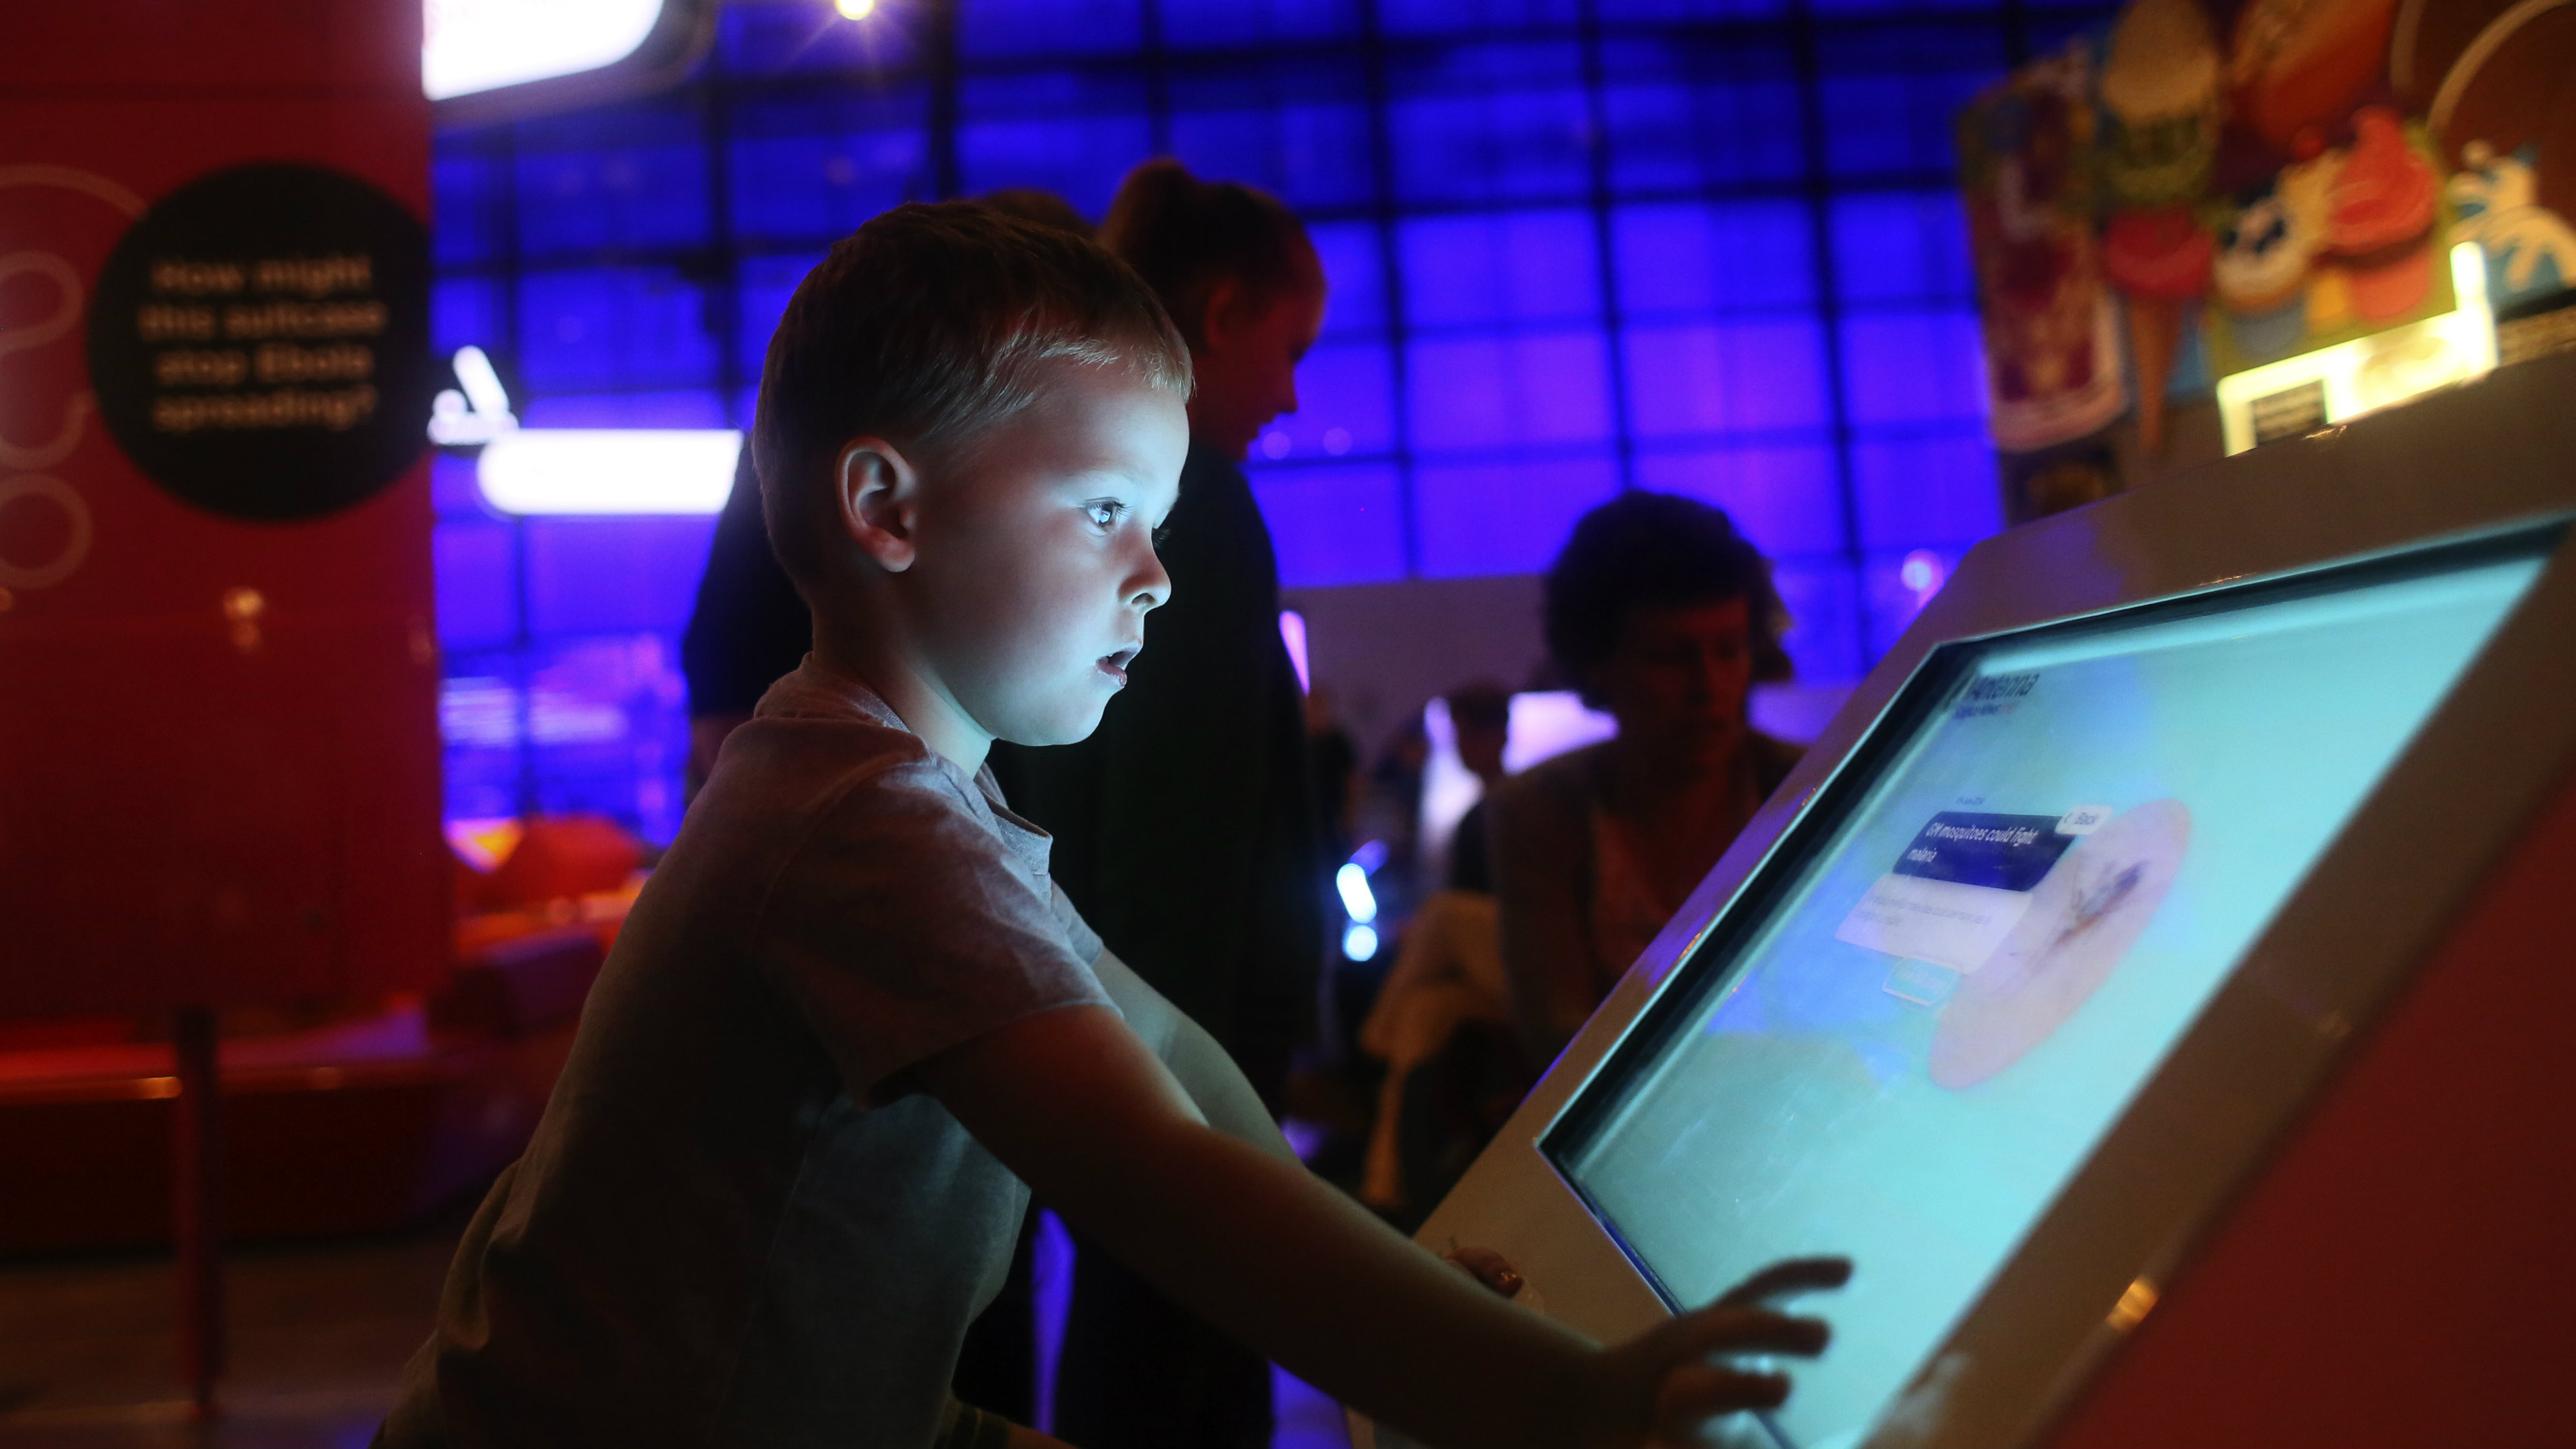 Alfie Latimer (4) from Dubai looks at an exhibit in the Science Museum, London August 4, 2015. London's Science Museum, and Natural History Museum are first and second most Googled Museums in the world according to London and Partners. The same research claims London is also the most Googled city in the world for art galleries, performing arts and innovative art and design. REUTERS/Paul Hackett TPX IMAGES OF THE DAY